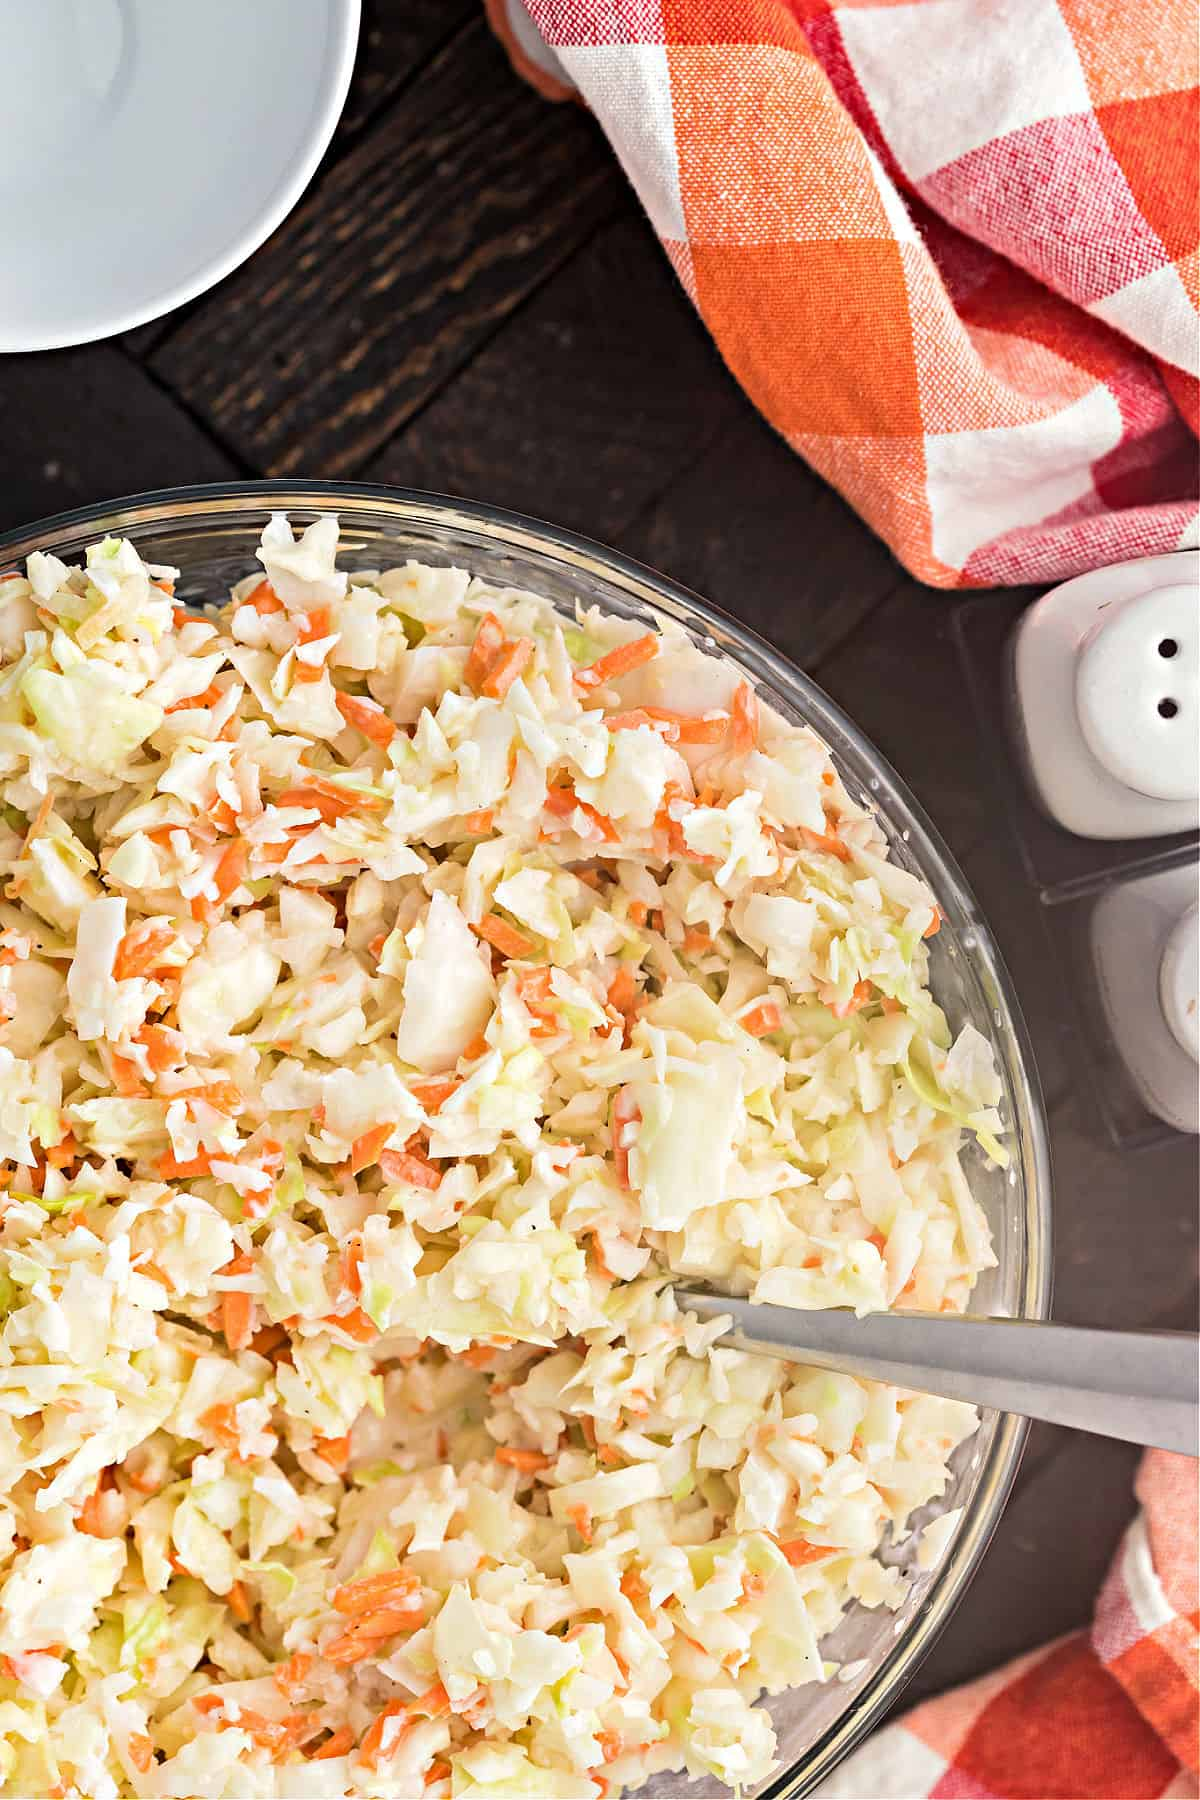 Coleslaw in a serving bowl with spoon.